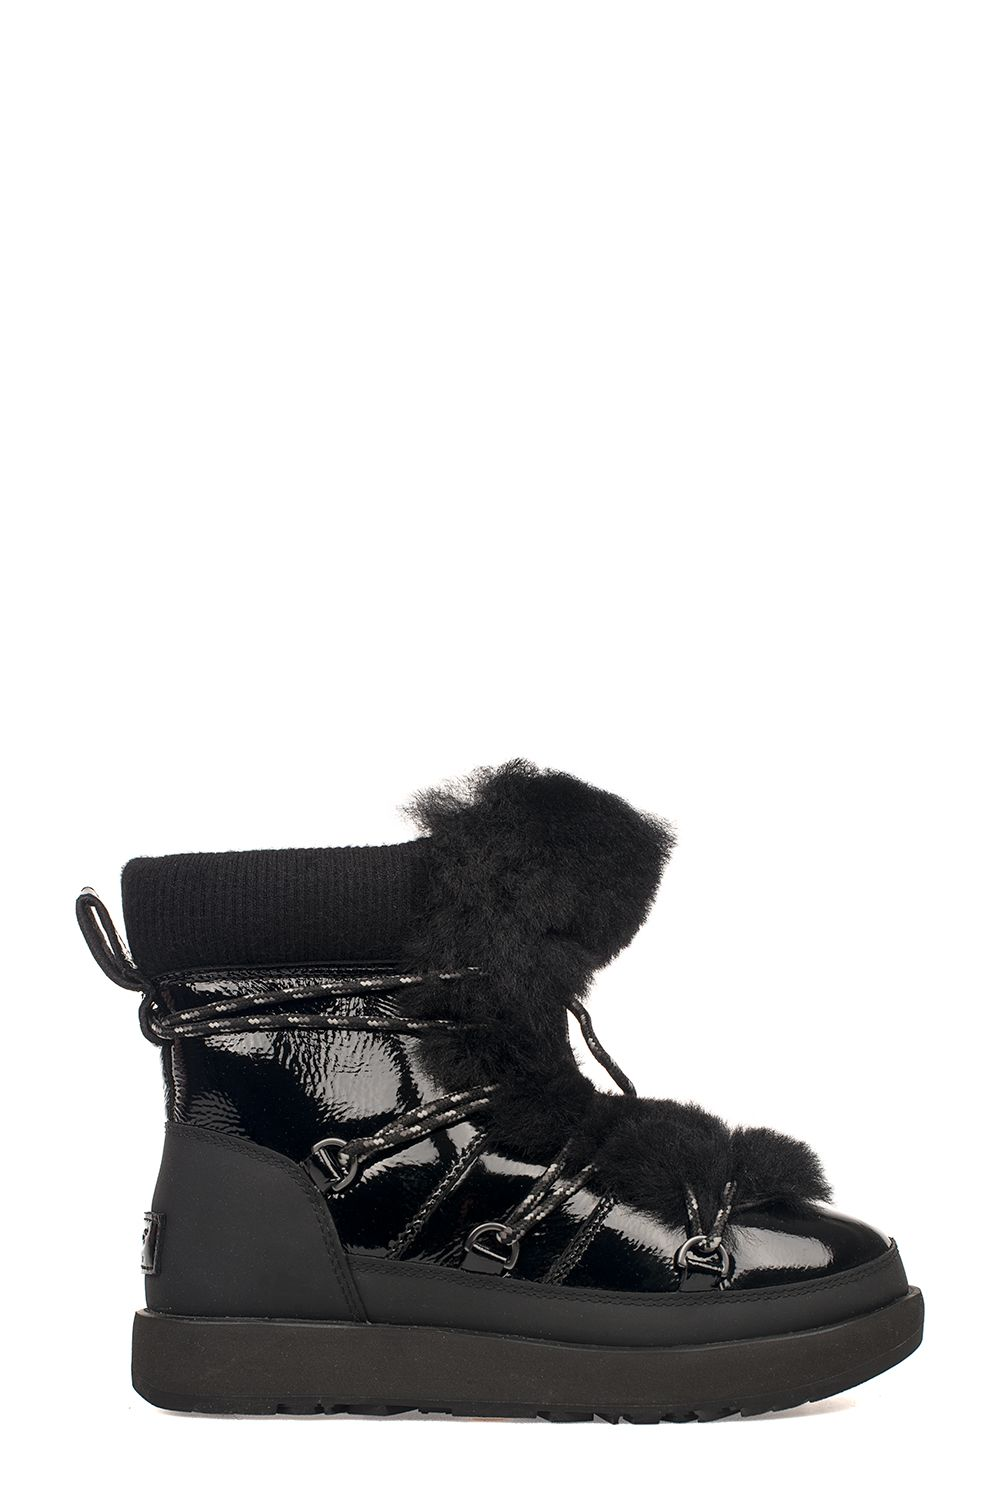 Black Patent Leather Highland Waterproof Low Boot